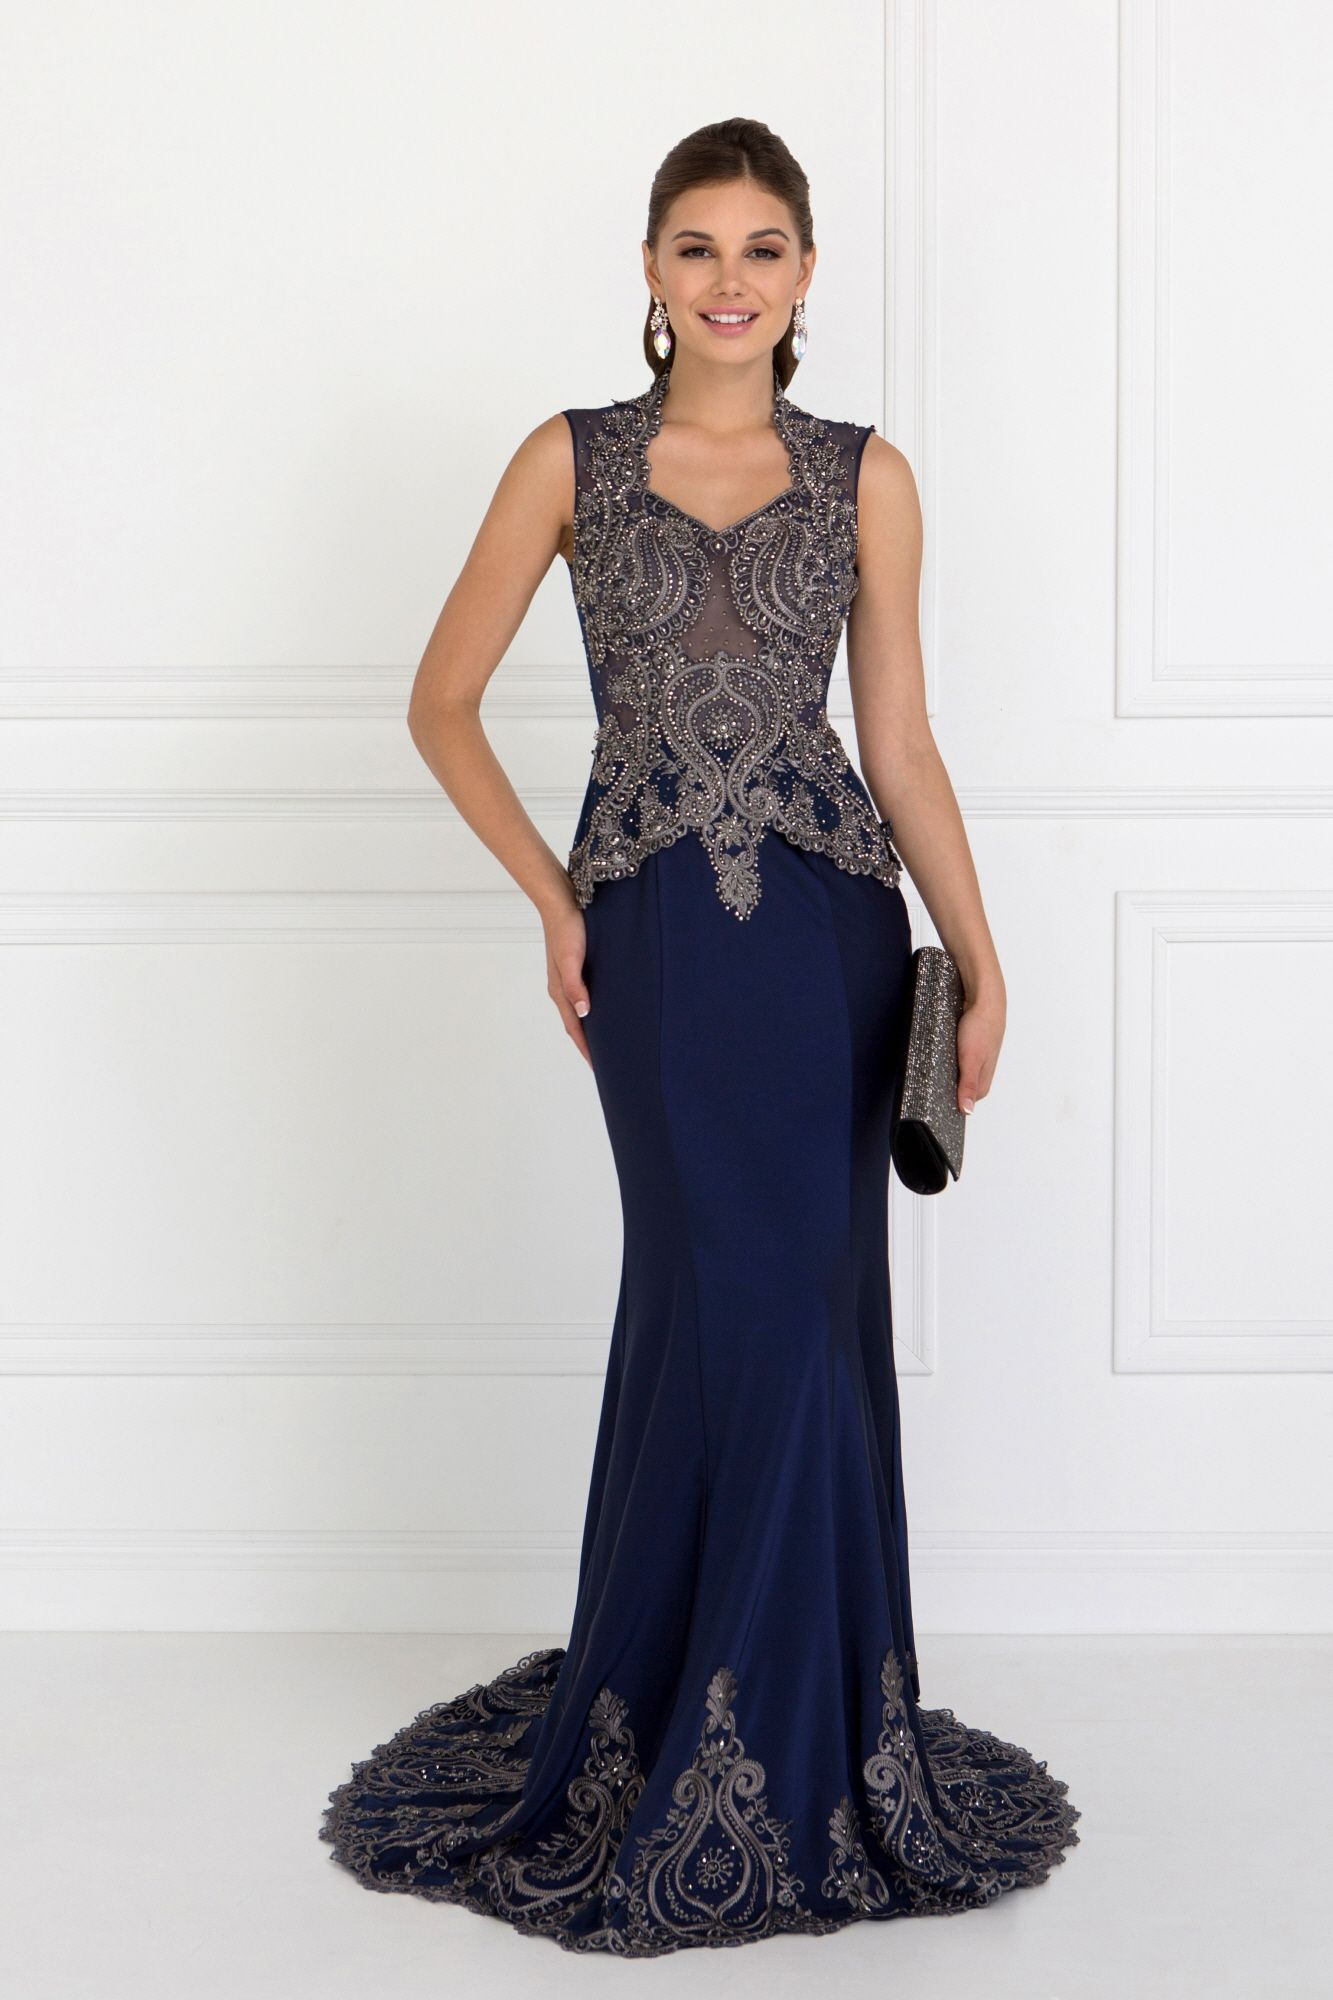 Women Formal Wear   Prom Dresses and Women Formal Dresses Available ...